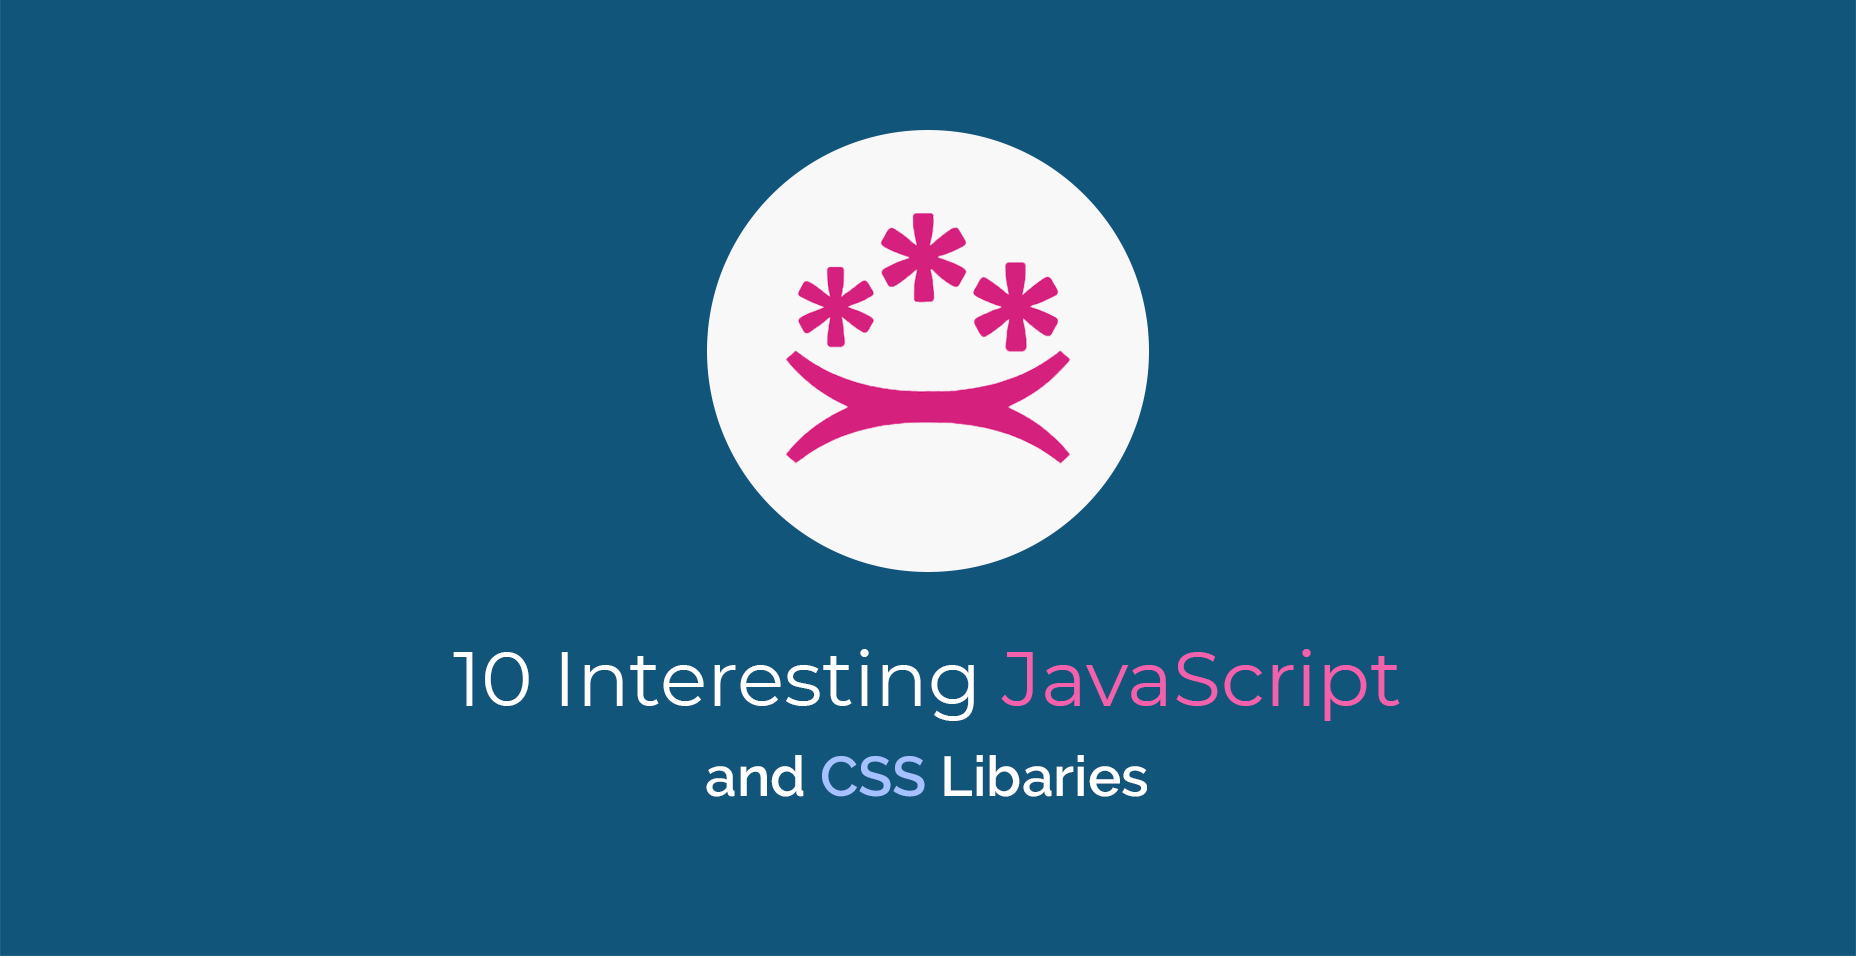 10 Interesting JavaScript and CSS libraries for September